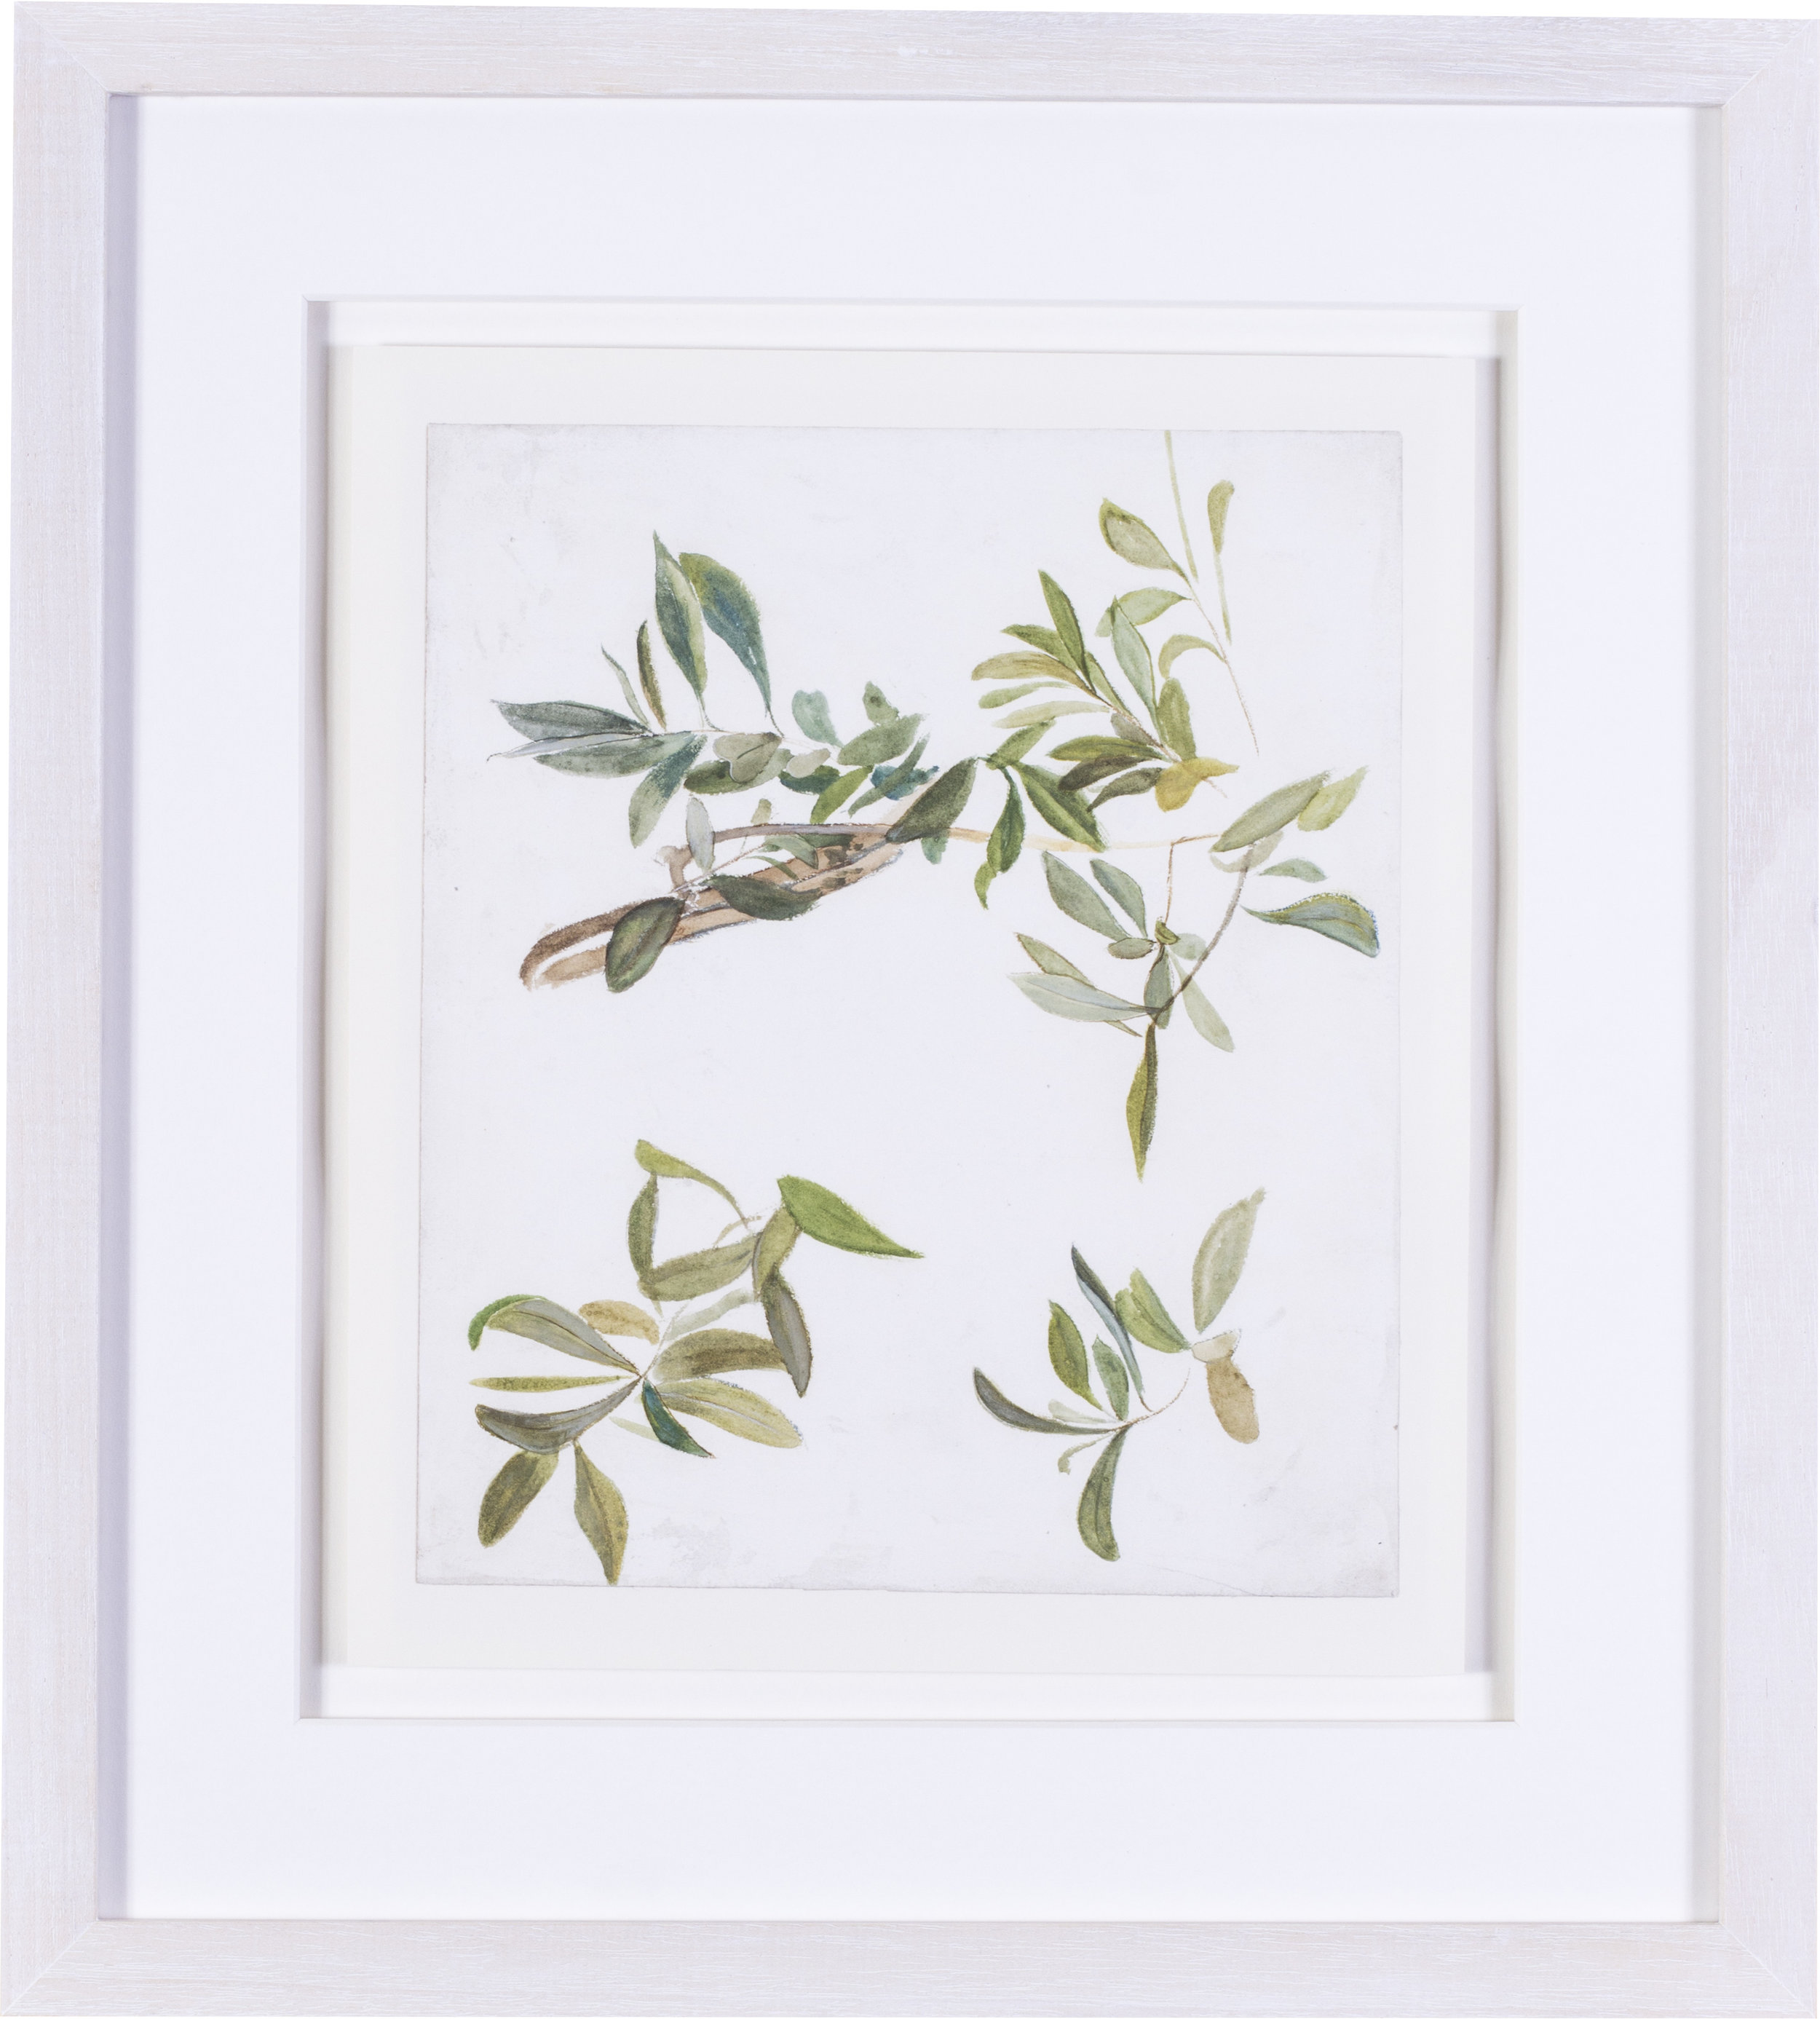 Olive branches    watercolour on paper  10 x 8.1/2 in. (25.3 x 21.7 cm.)  Provenance: The Clayton-Stamm Collection.  Dominic Winter, Cirencester, 8thNovember 2018, lot 464  £1,900